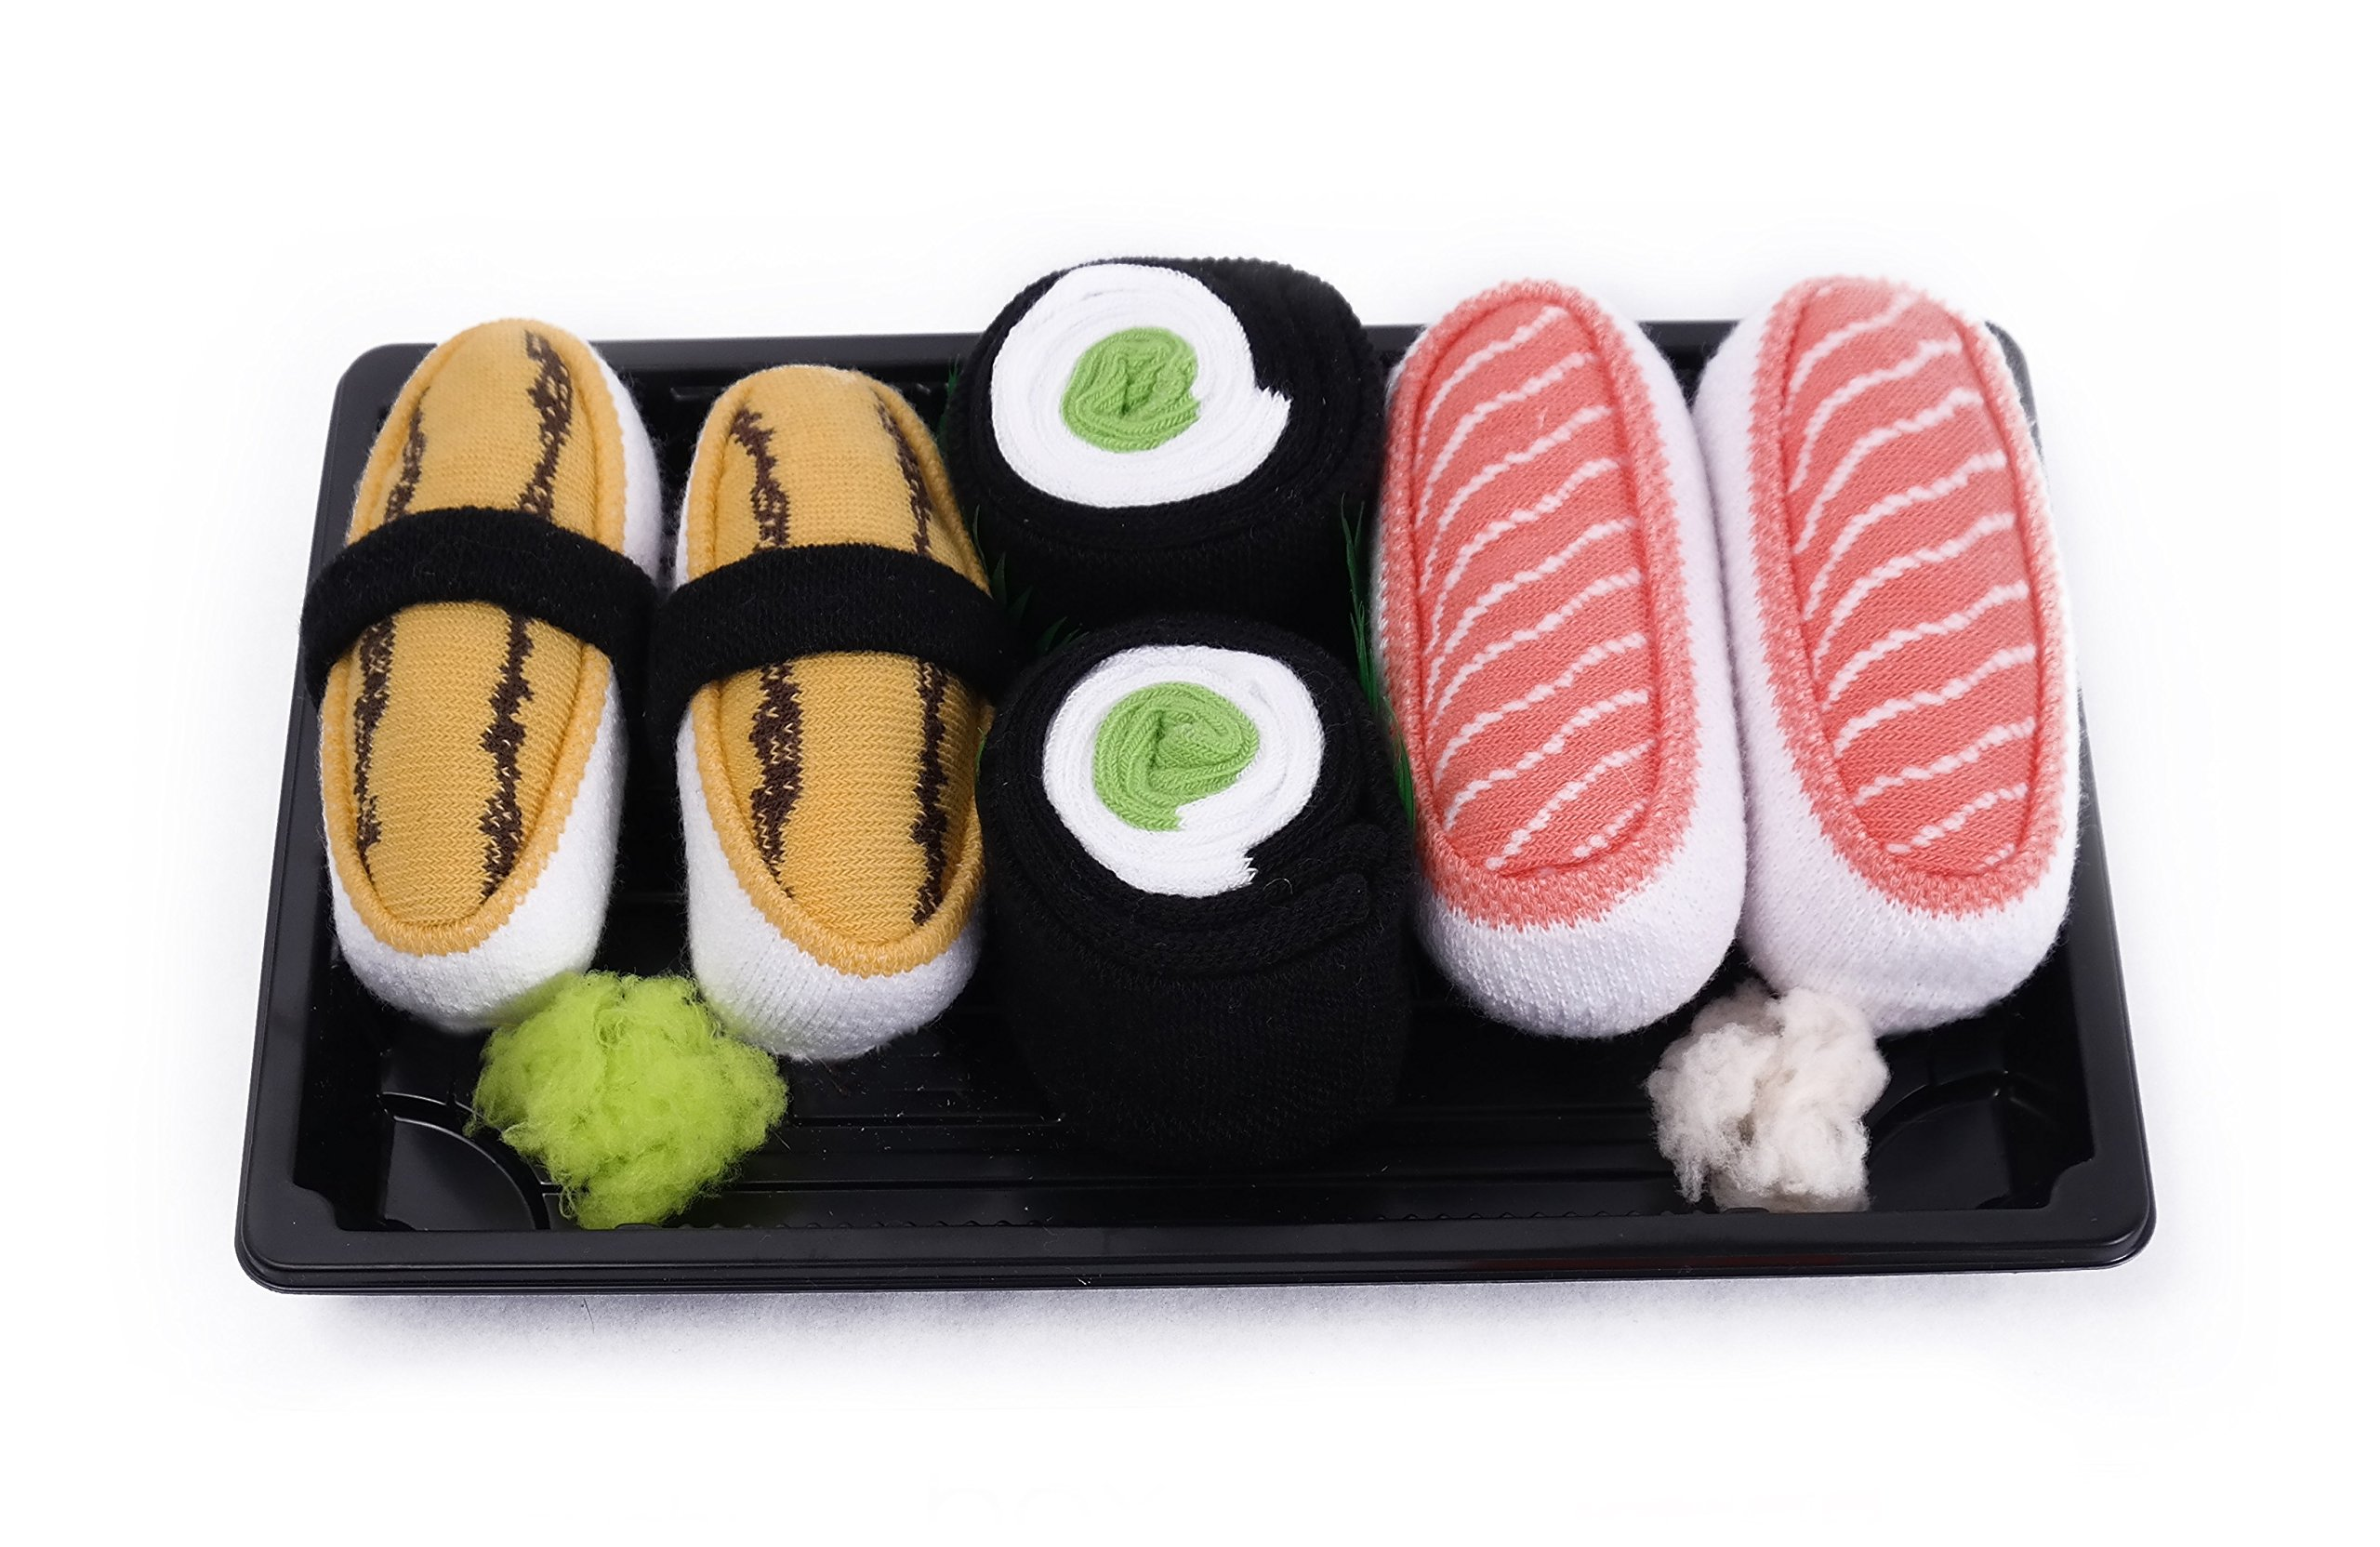 SUSHI SOCKS BOX 3 pairs Tamago Cucumber Salmon FUNNY GIFT! Made in Europe S by Colors of Rainbow (Image #1)